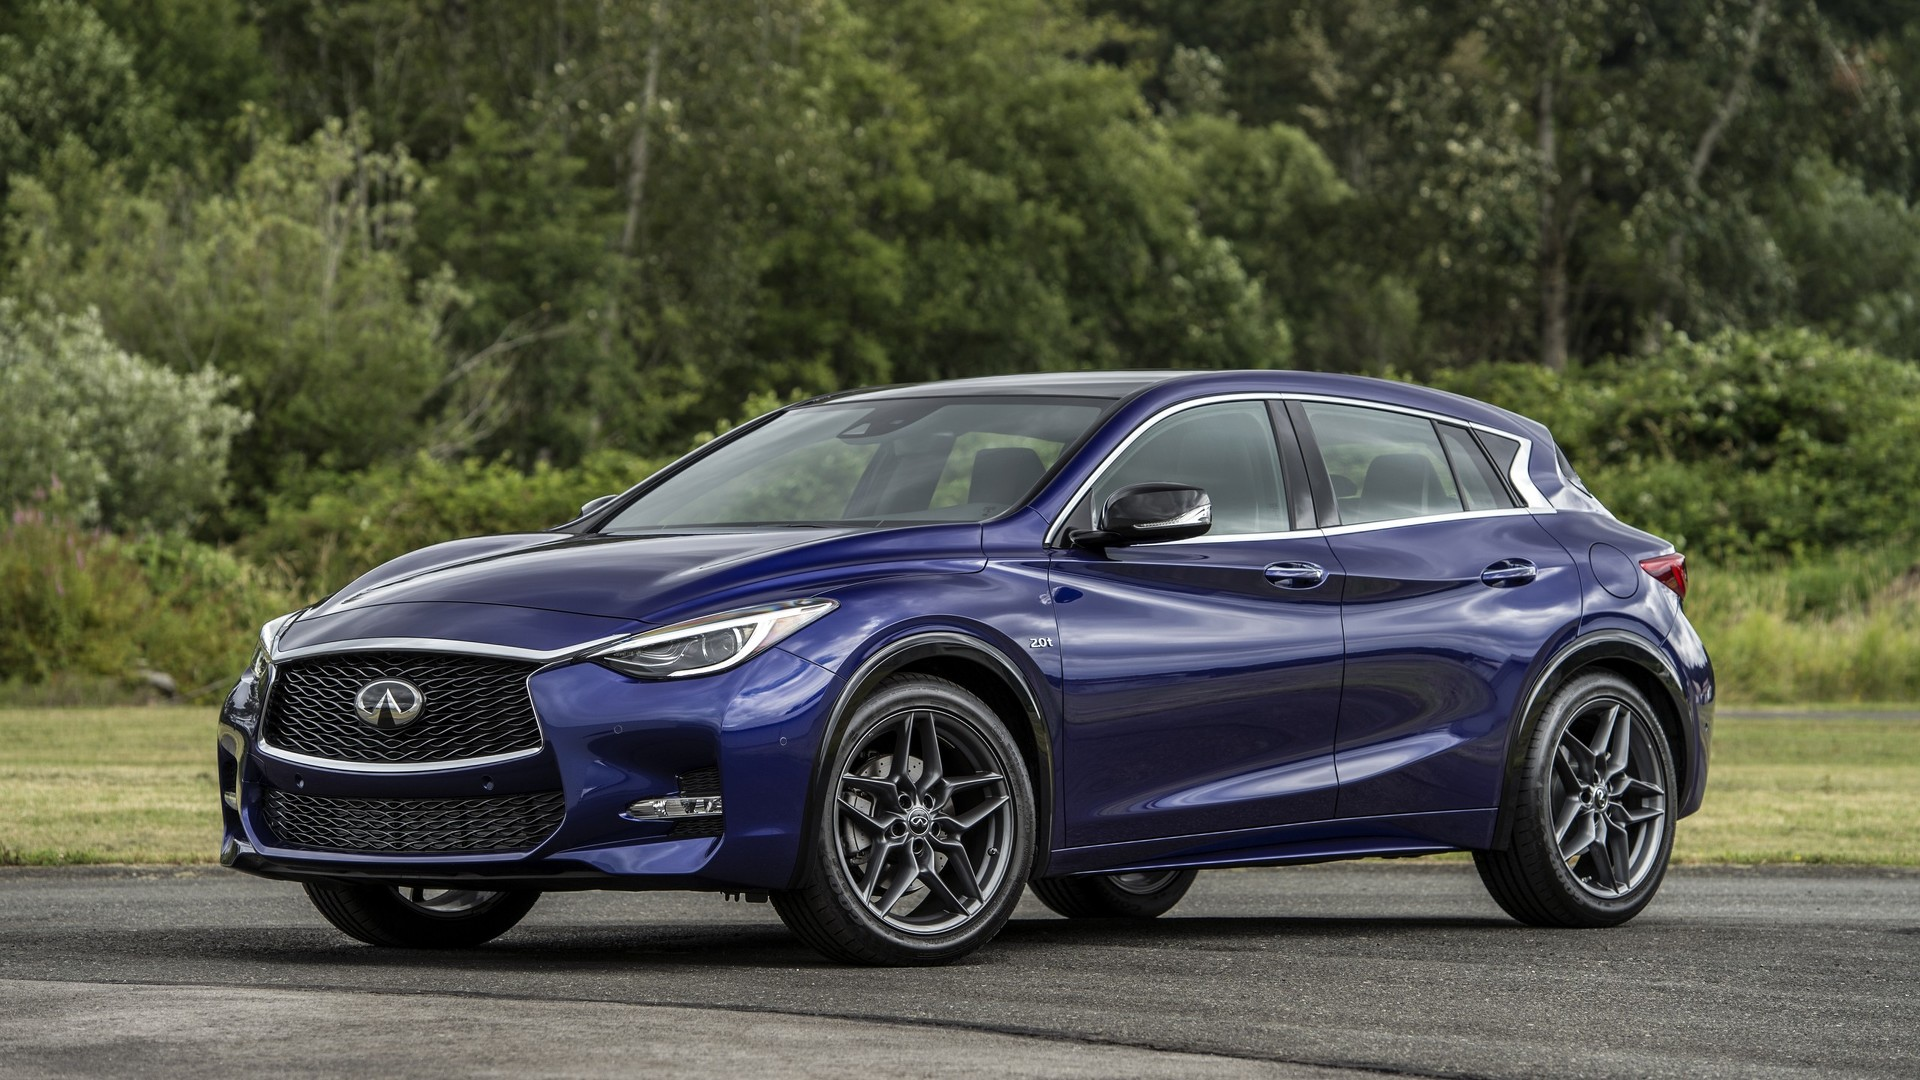 infinity h infiniti debut concept compression to engine news detroit auto show variable crossover